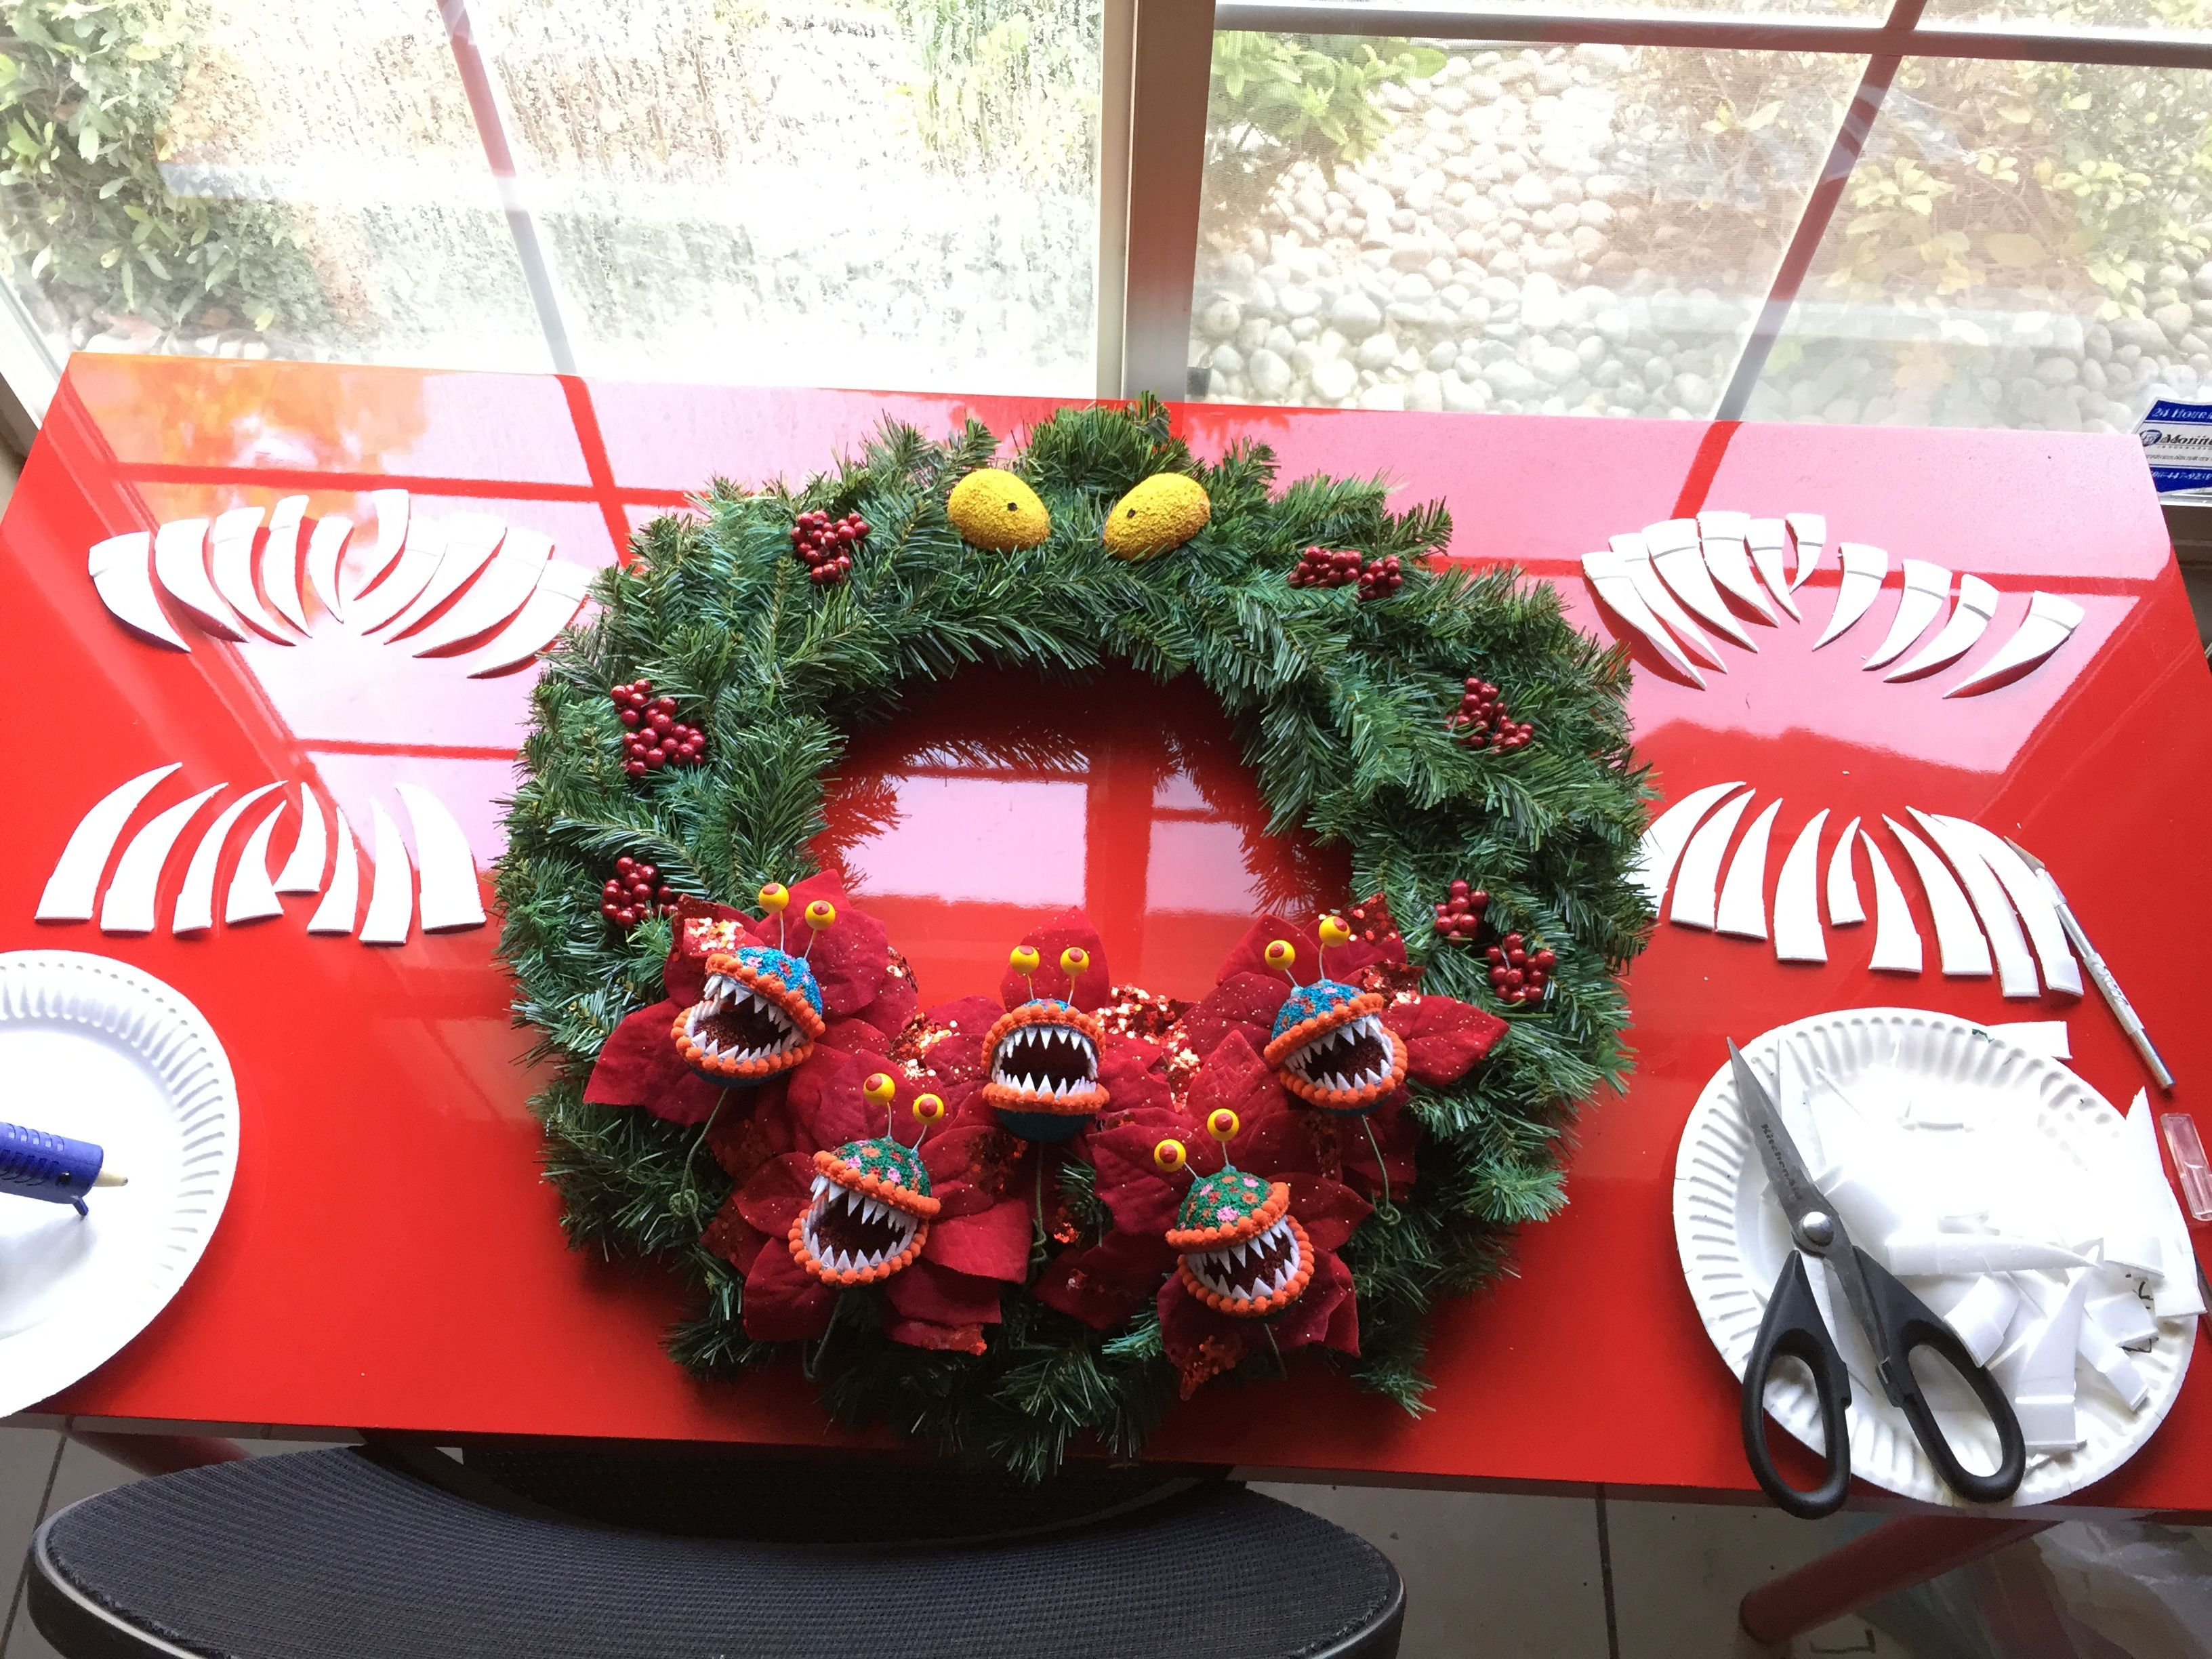 Man Eating Wreath inspired by the Nightmare before Christmas and the  Holiday Haunted Mansion at Disneyland